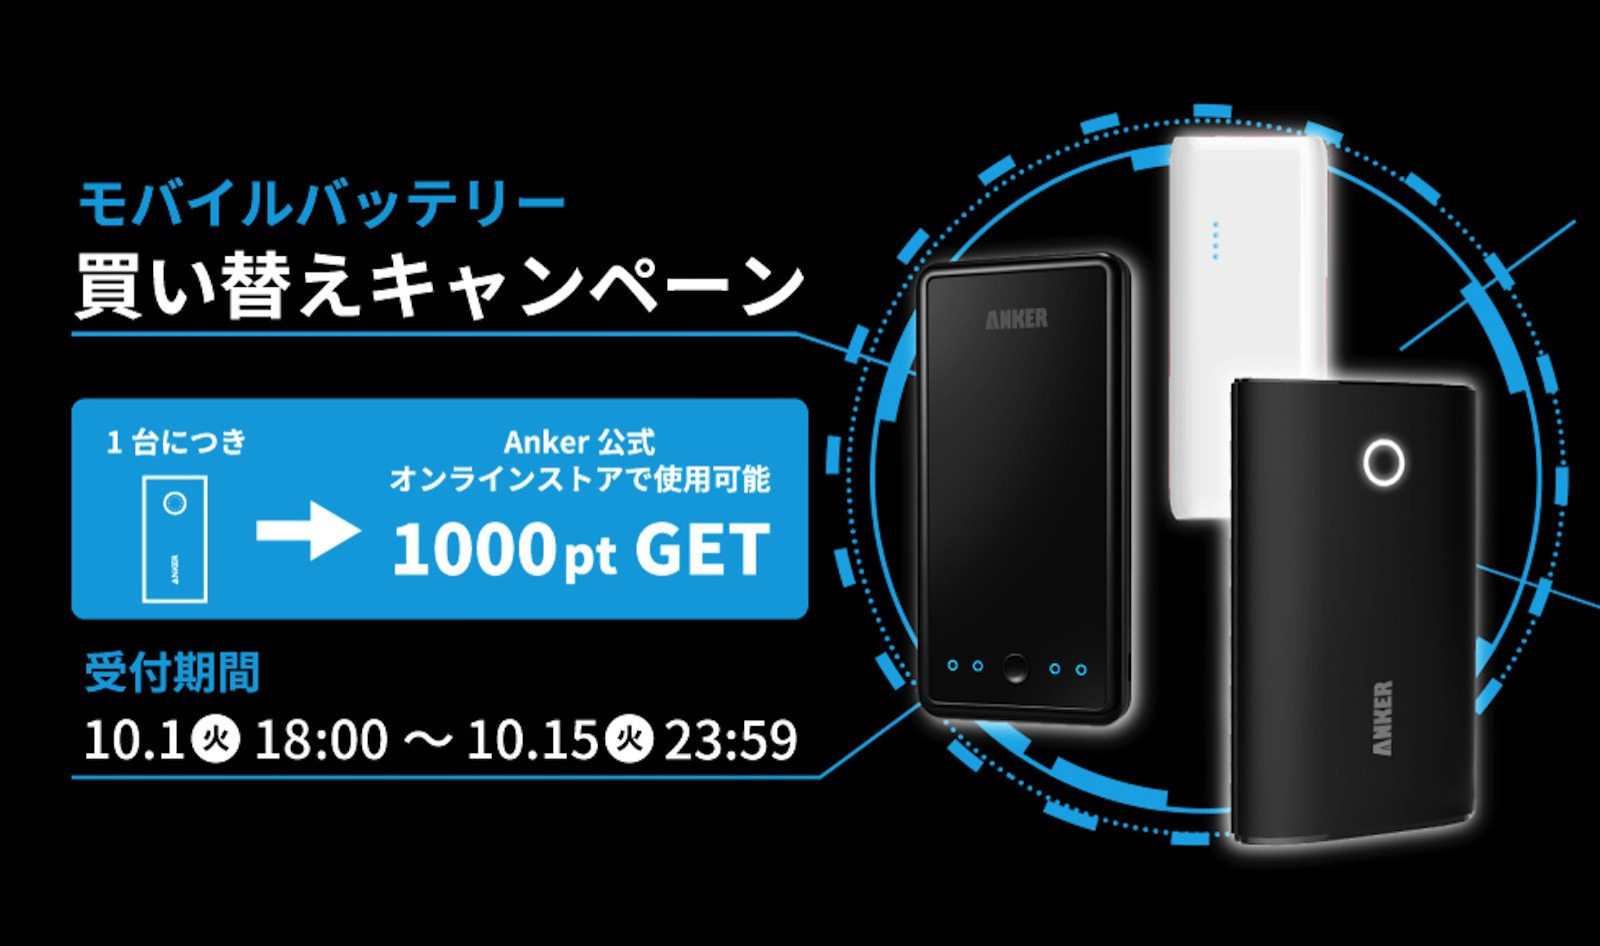 anker-exchange-battery-campaign.jpg